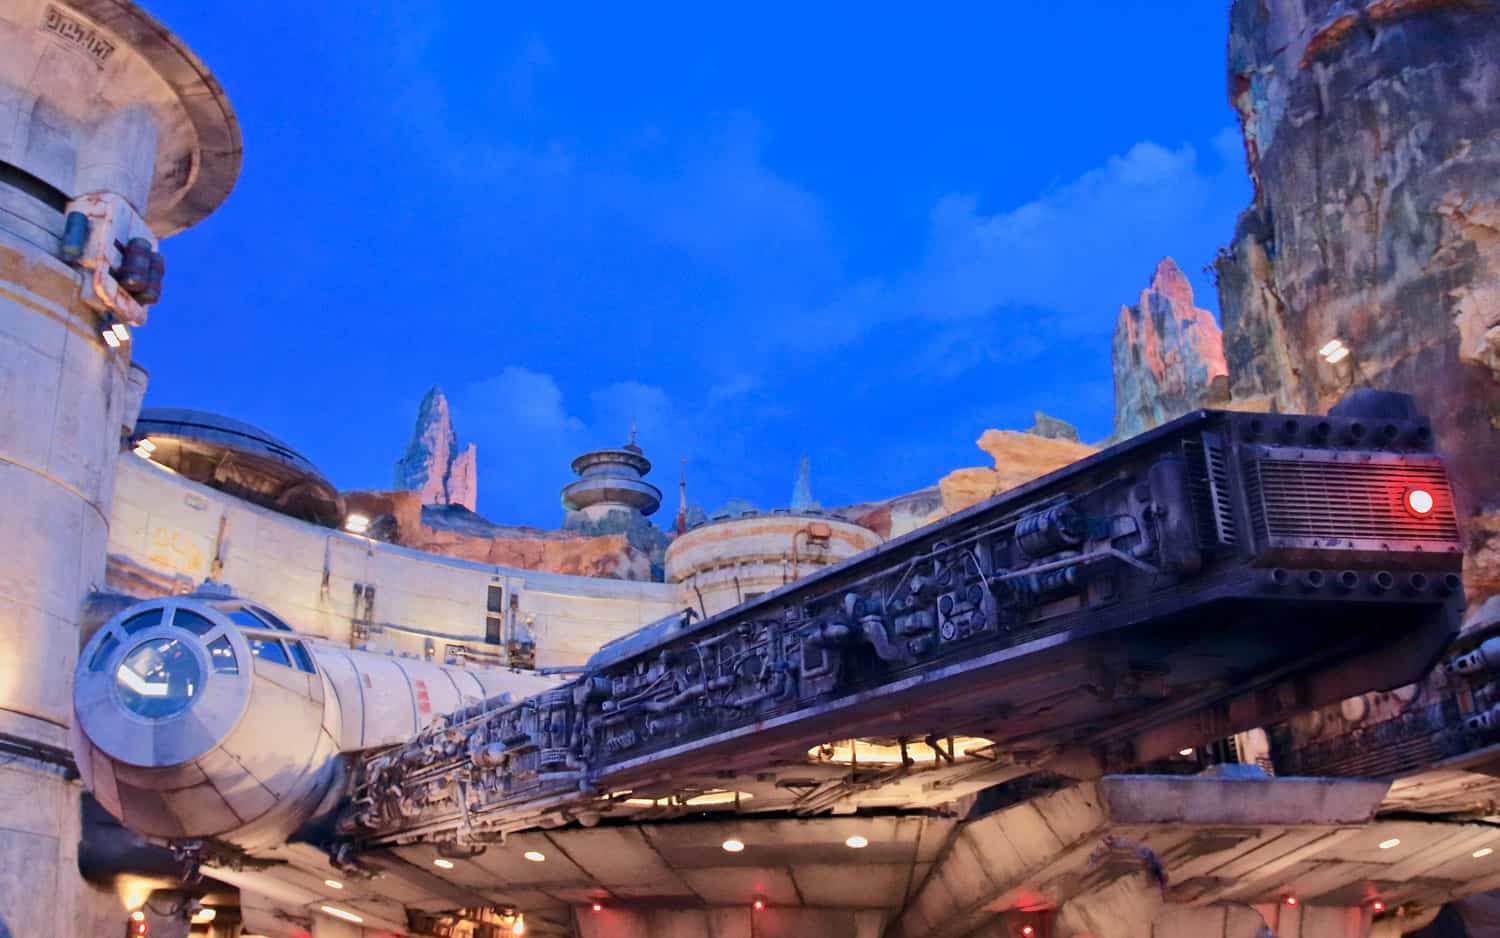 The Exhaustive Guide to Rides at Hollywood Studios 6